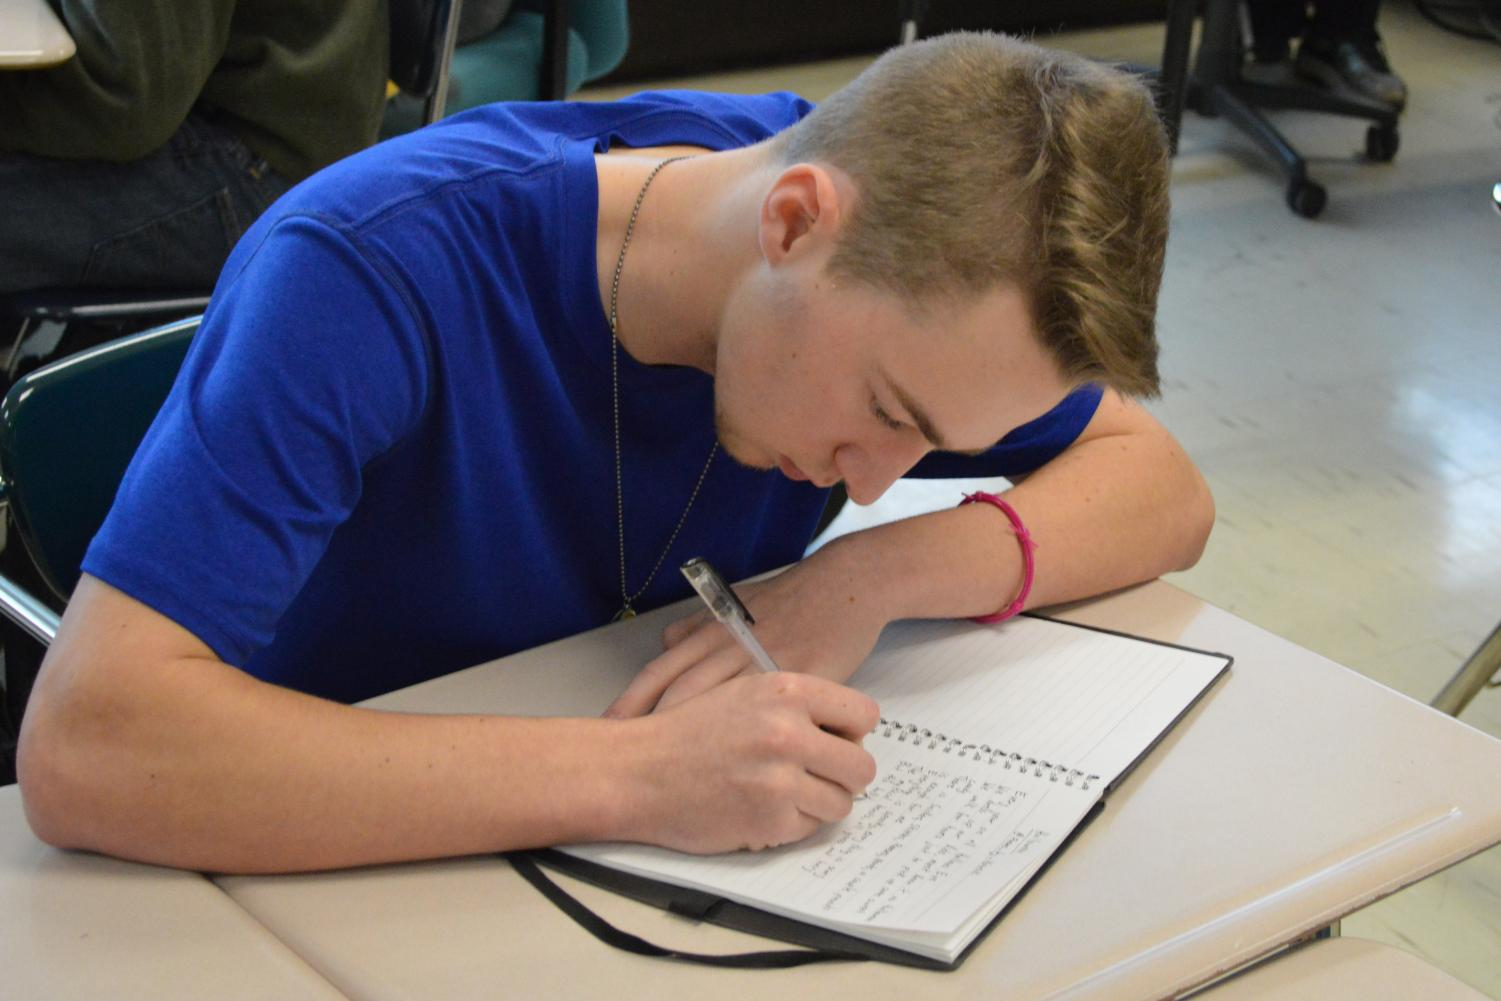 Junior Adam Kowski writes a poem during class on Monday, Nov. 6. He uploads his poems to his Instagram account dedicated to poetry. Follow him @poems_by_kowski on Instagram.